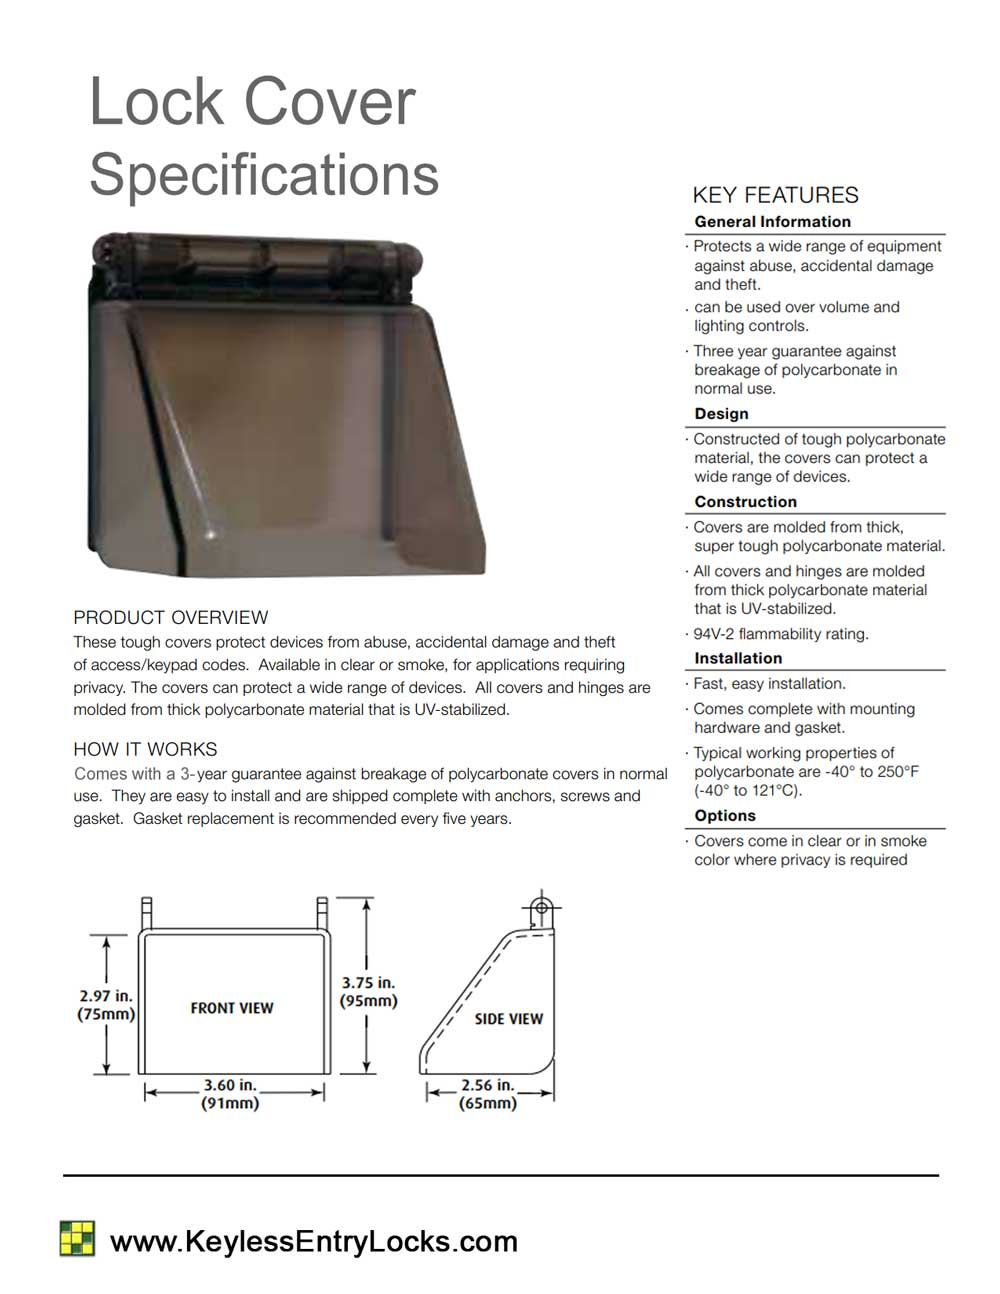 Polycarbonate Lock Cover - Specifications